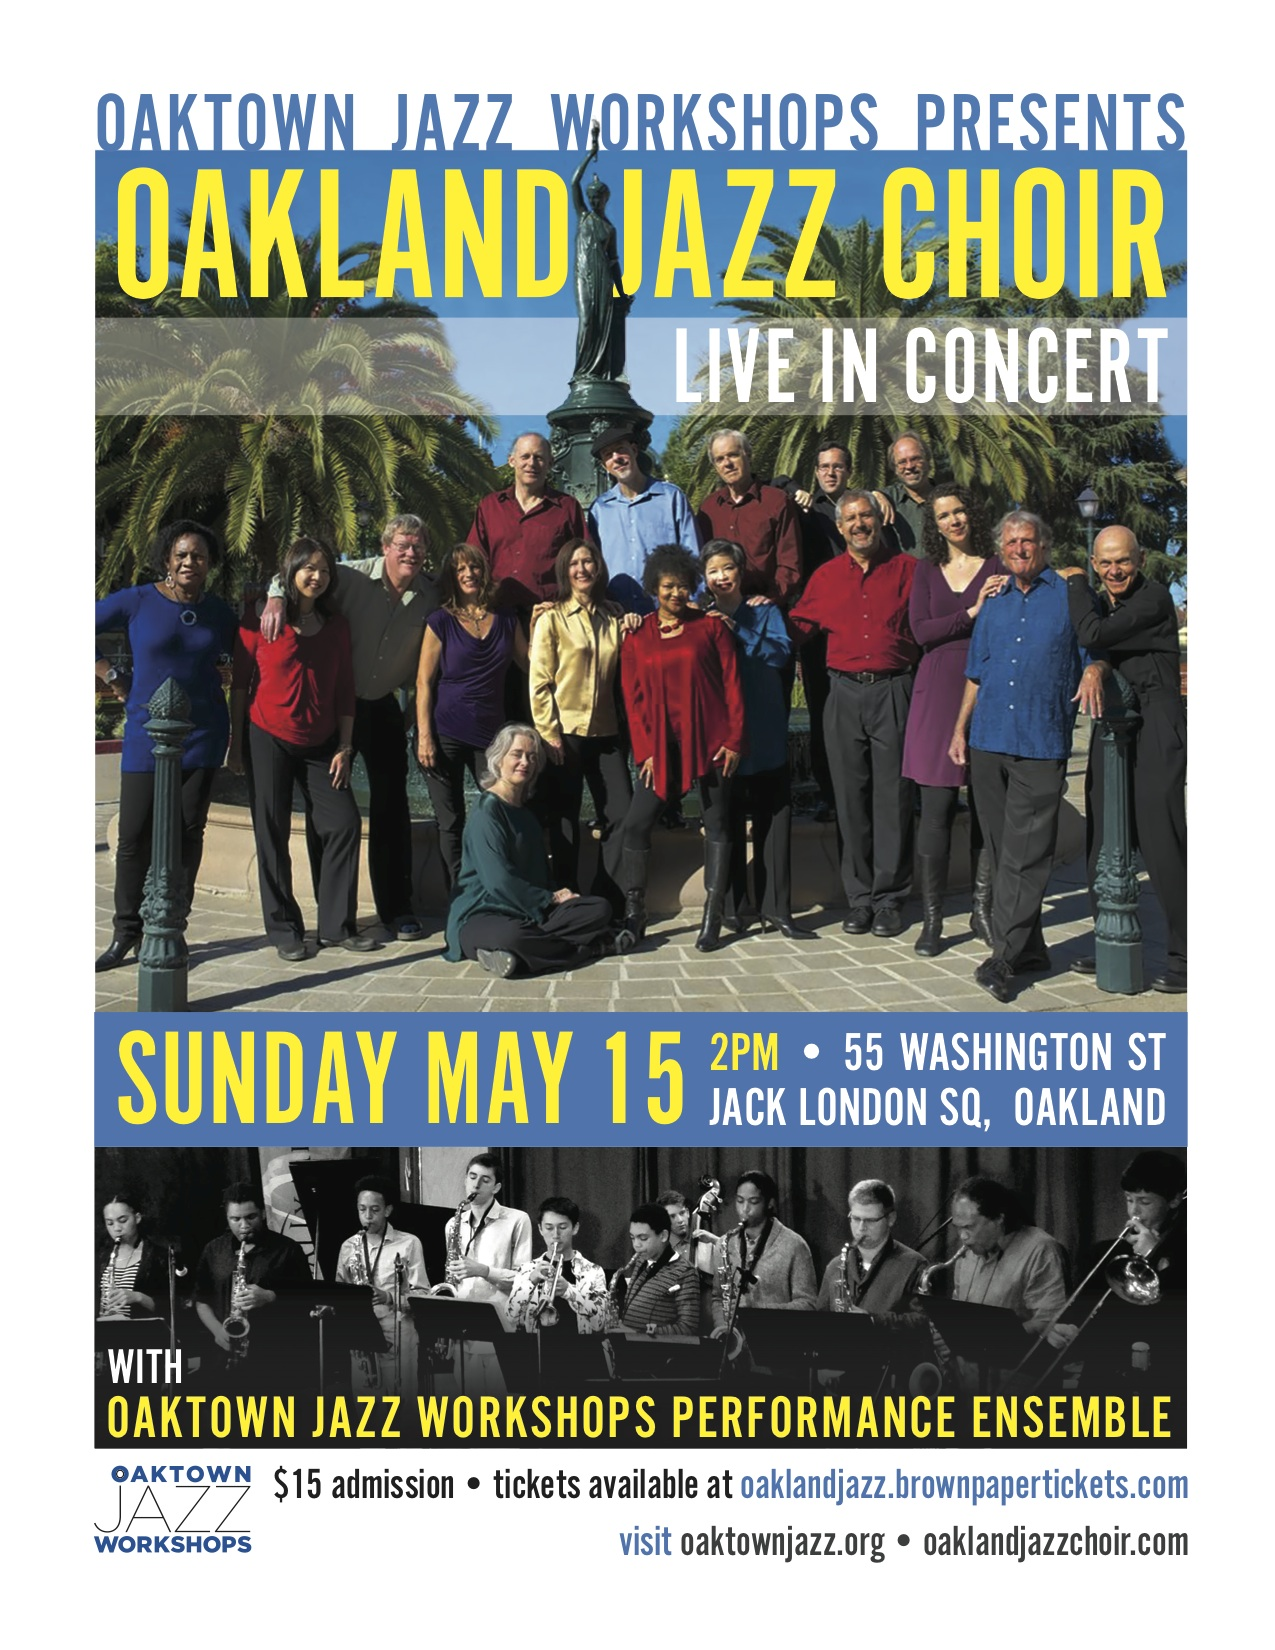 The Oakland Jazz Choir In Collaboration With The Oaktown Jazz Workshops' Performance Ensemble Celebrate Spring With A Joint Performance